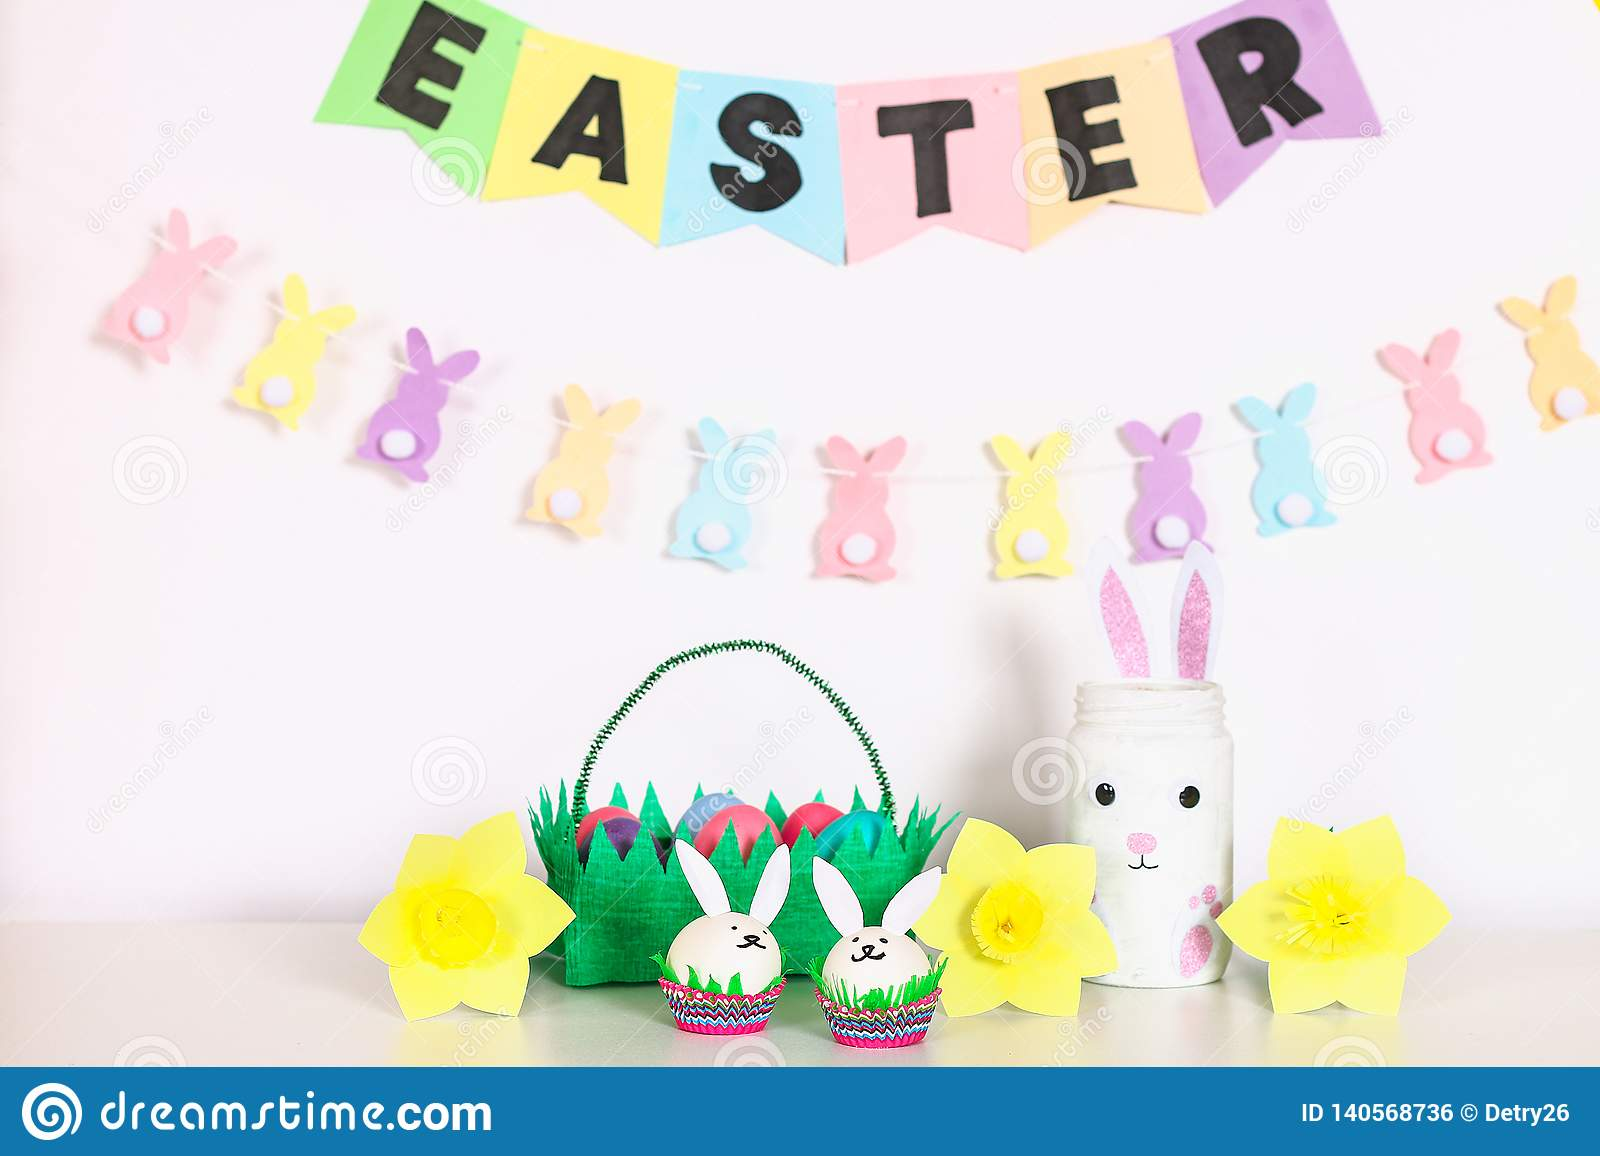 Diy decor for Easter. Paper garlands, vase bunny, daffodils, eggs bunnies, basket with painted eggs